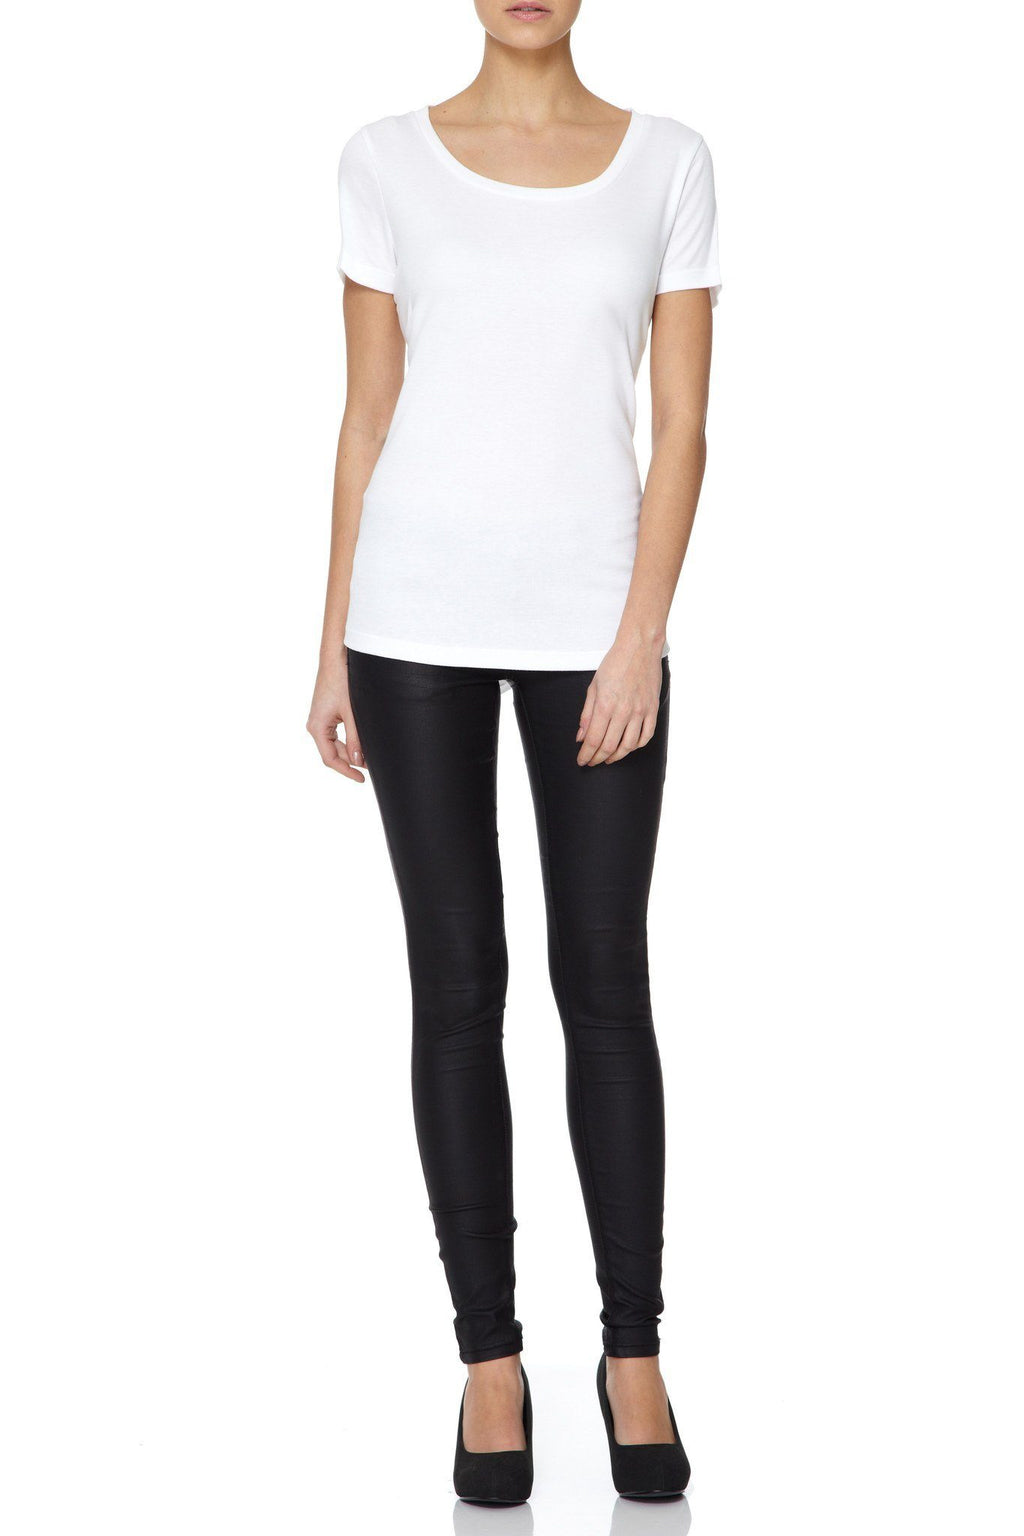 Scoop Neck Cotton Modal Blend T-shirt by Lavender Hill Clothing